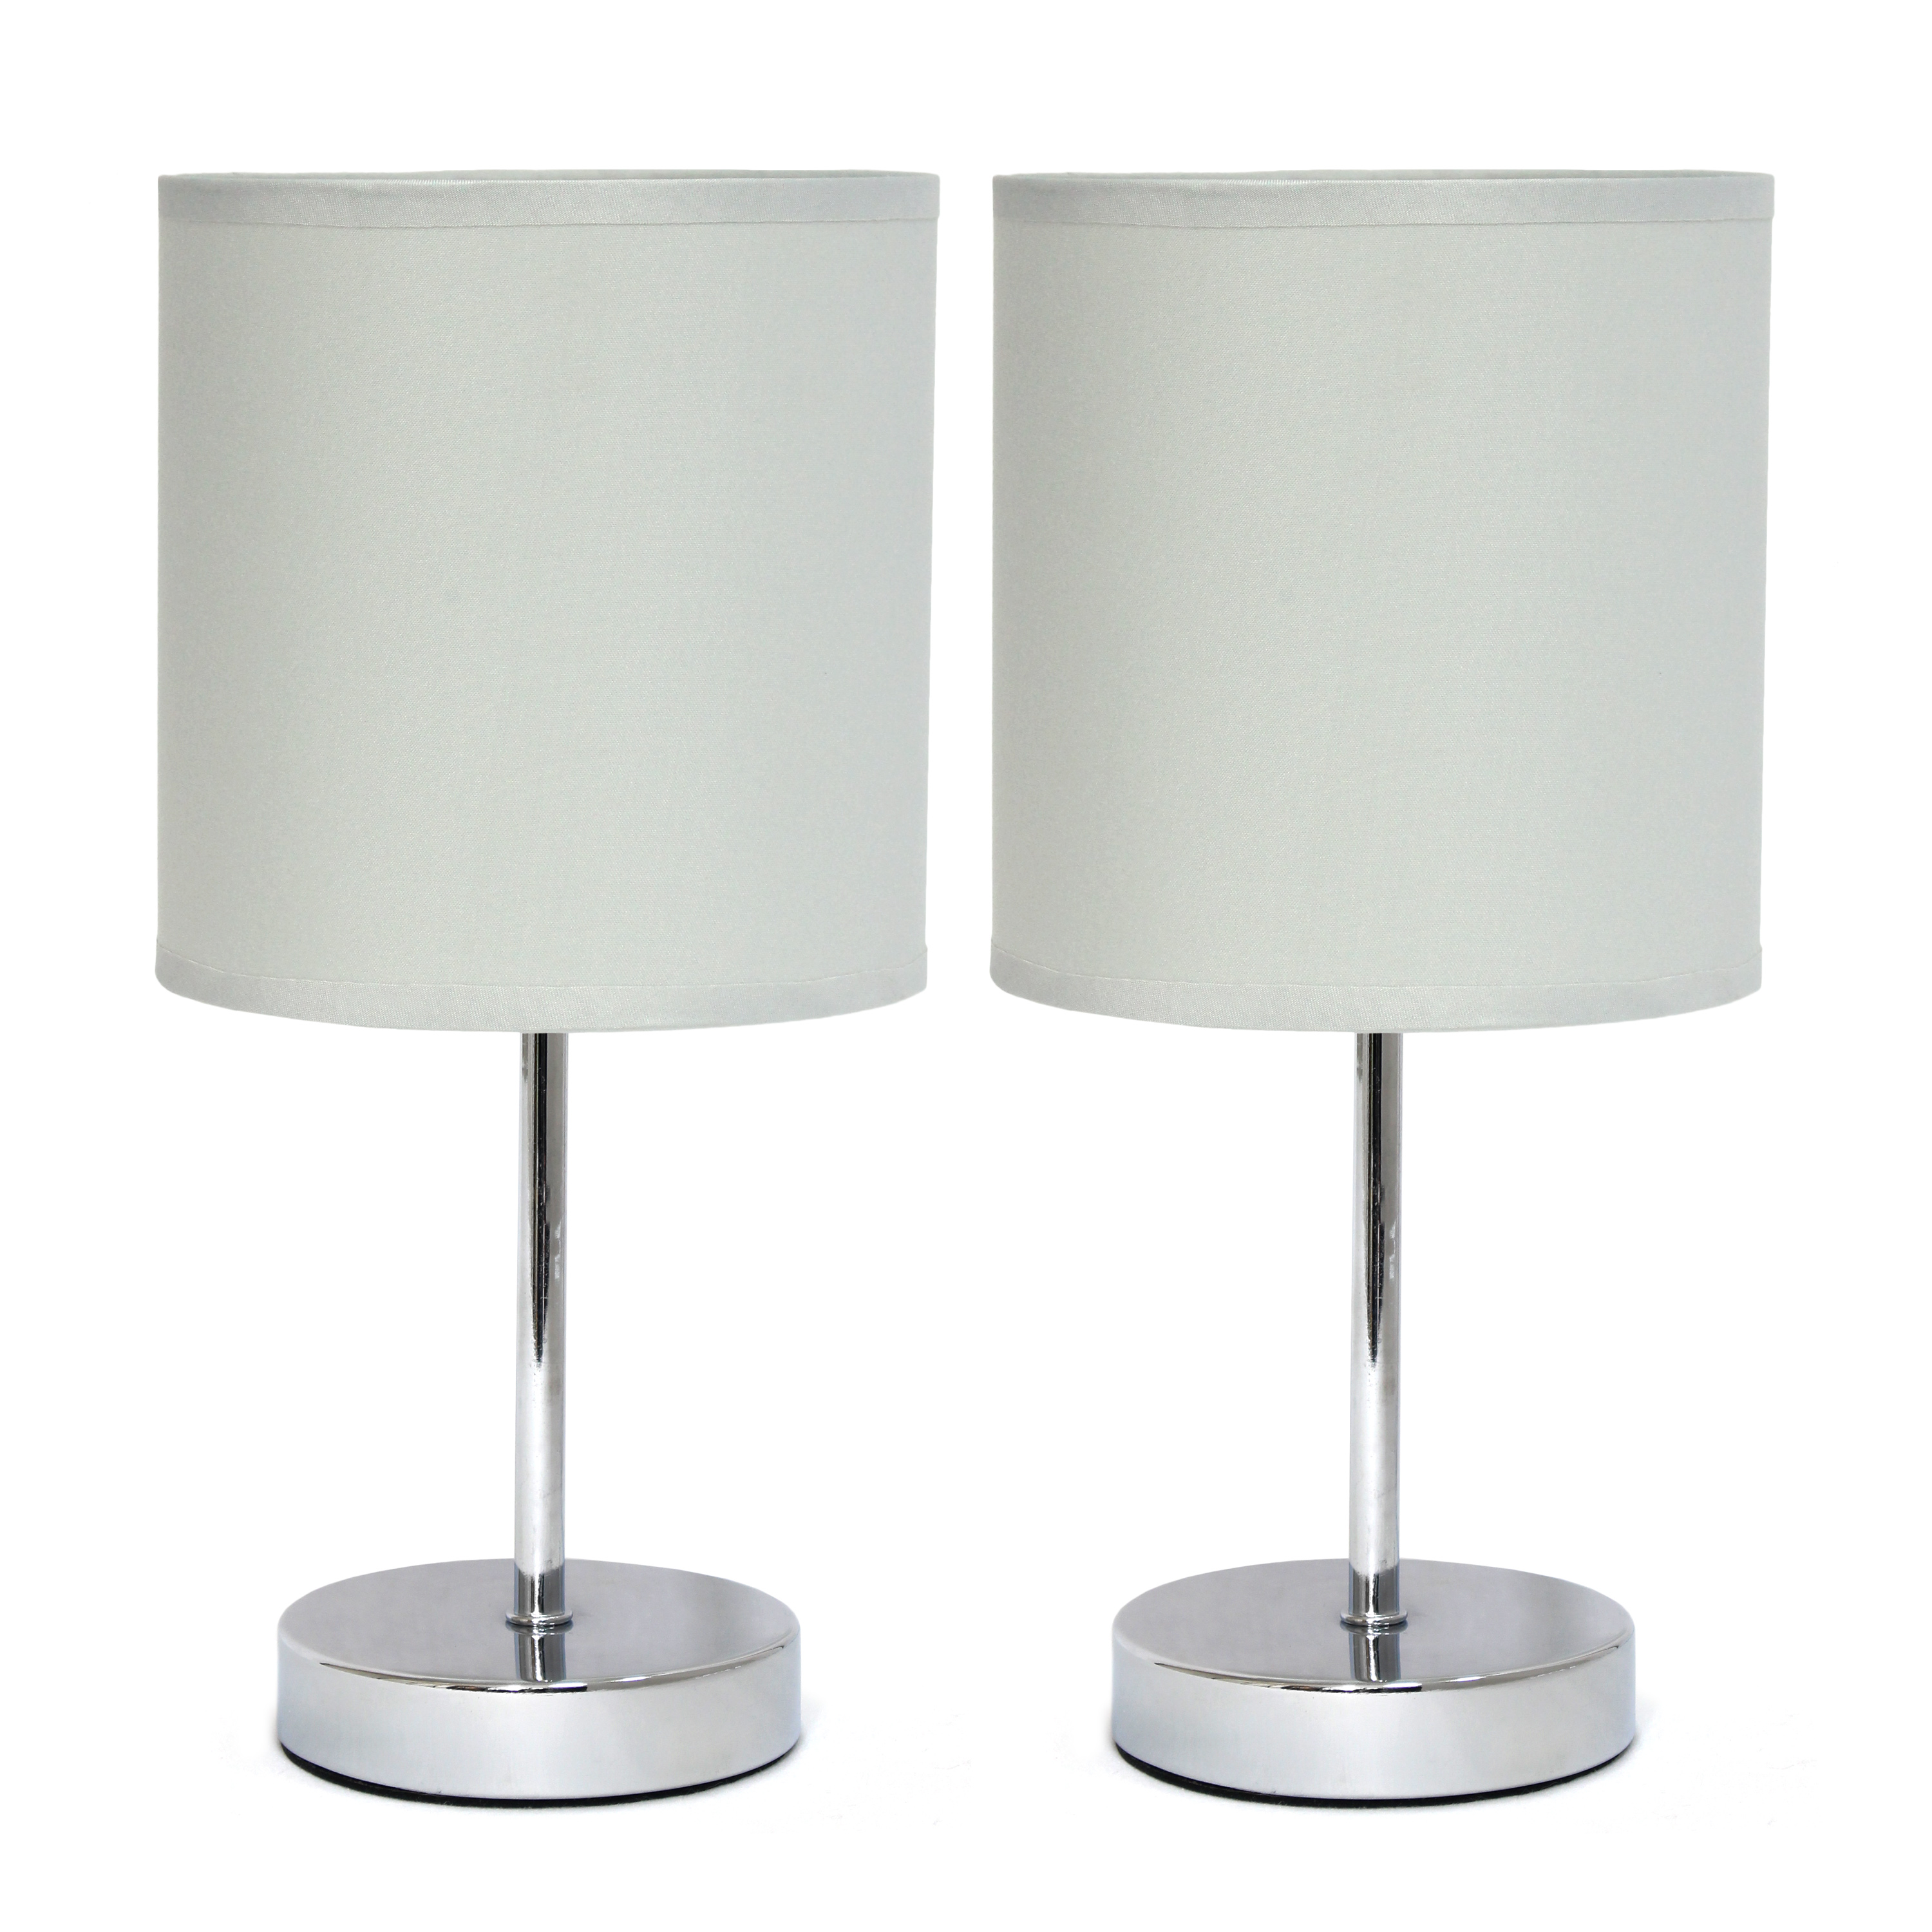 Simple Designs Chrome Mini Basic Table Lamp with Fabric Shade 2 Pack Set, Slate Gray